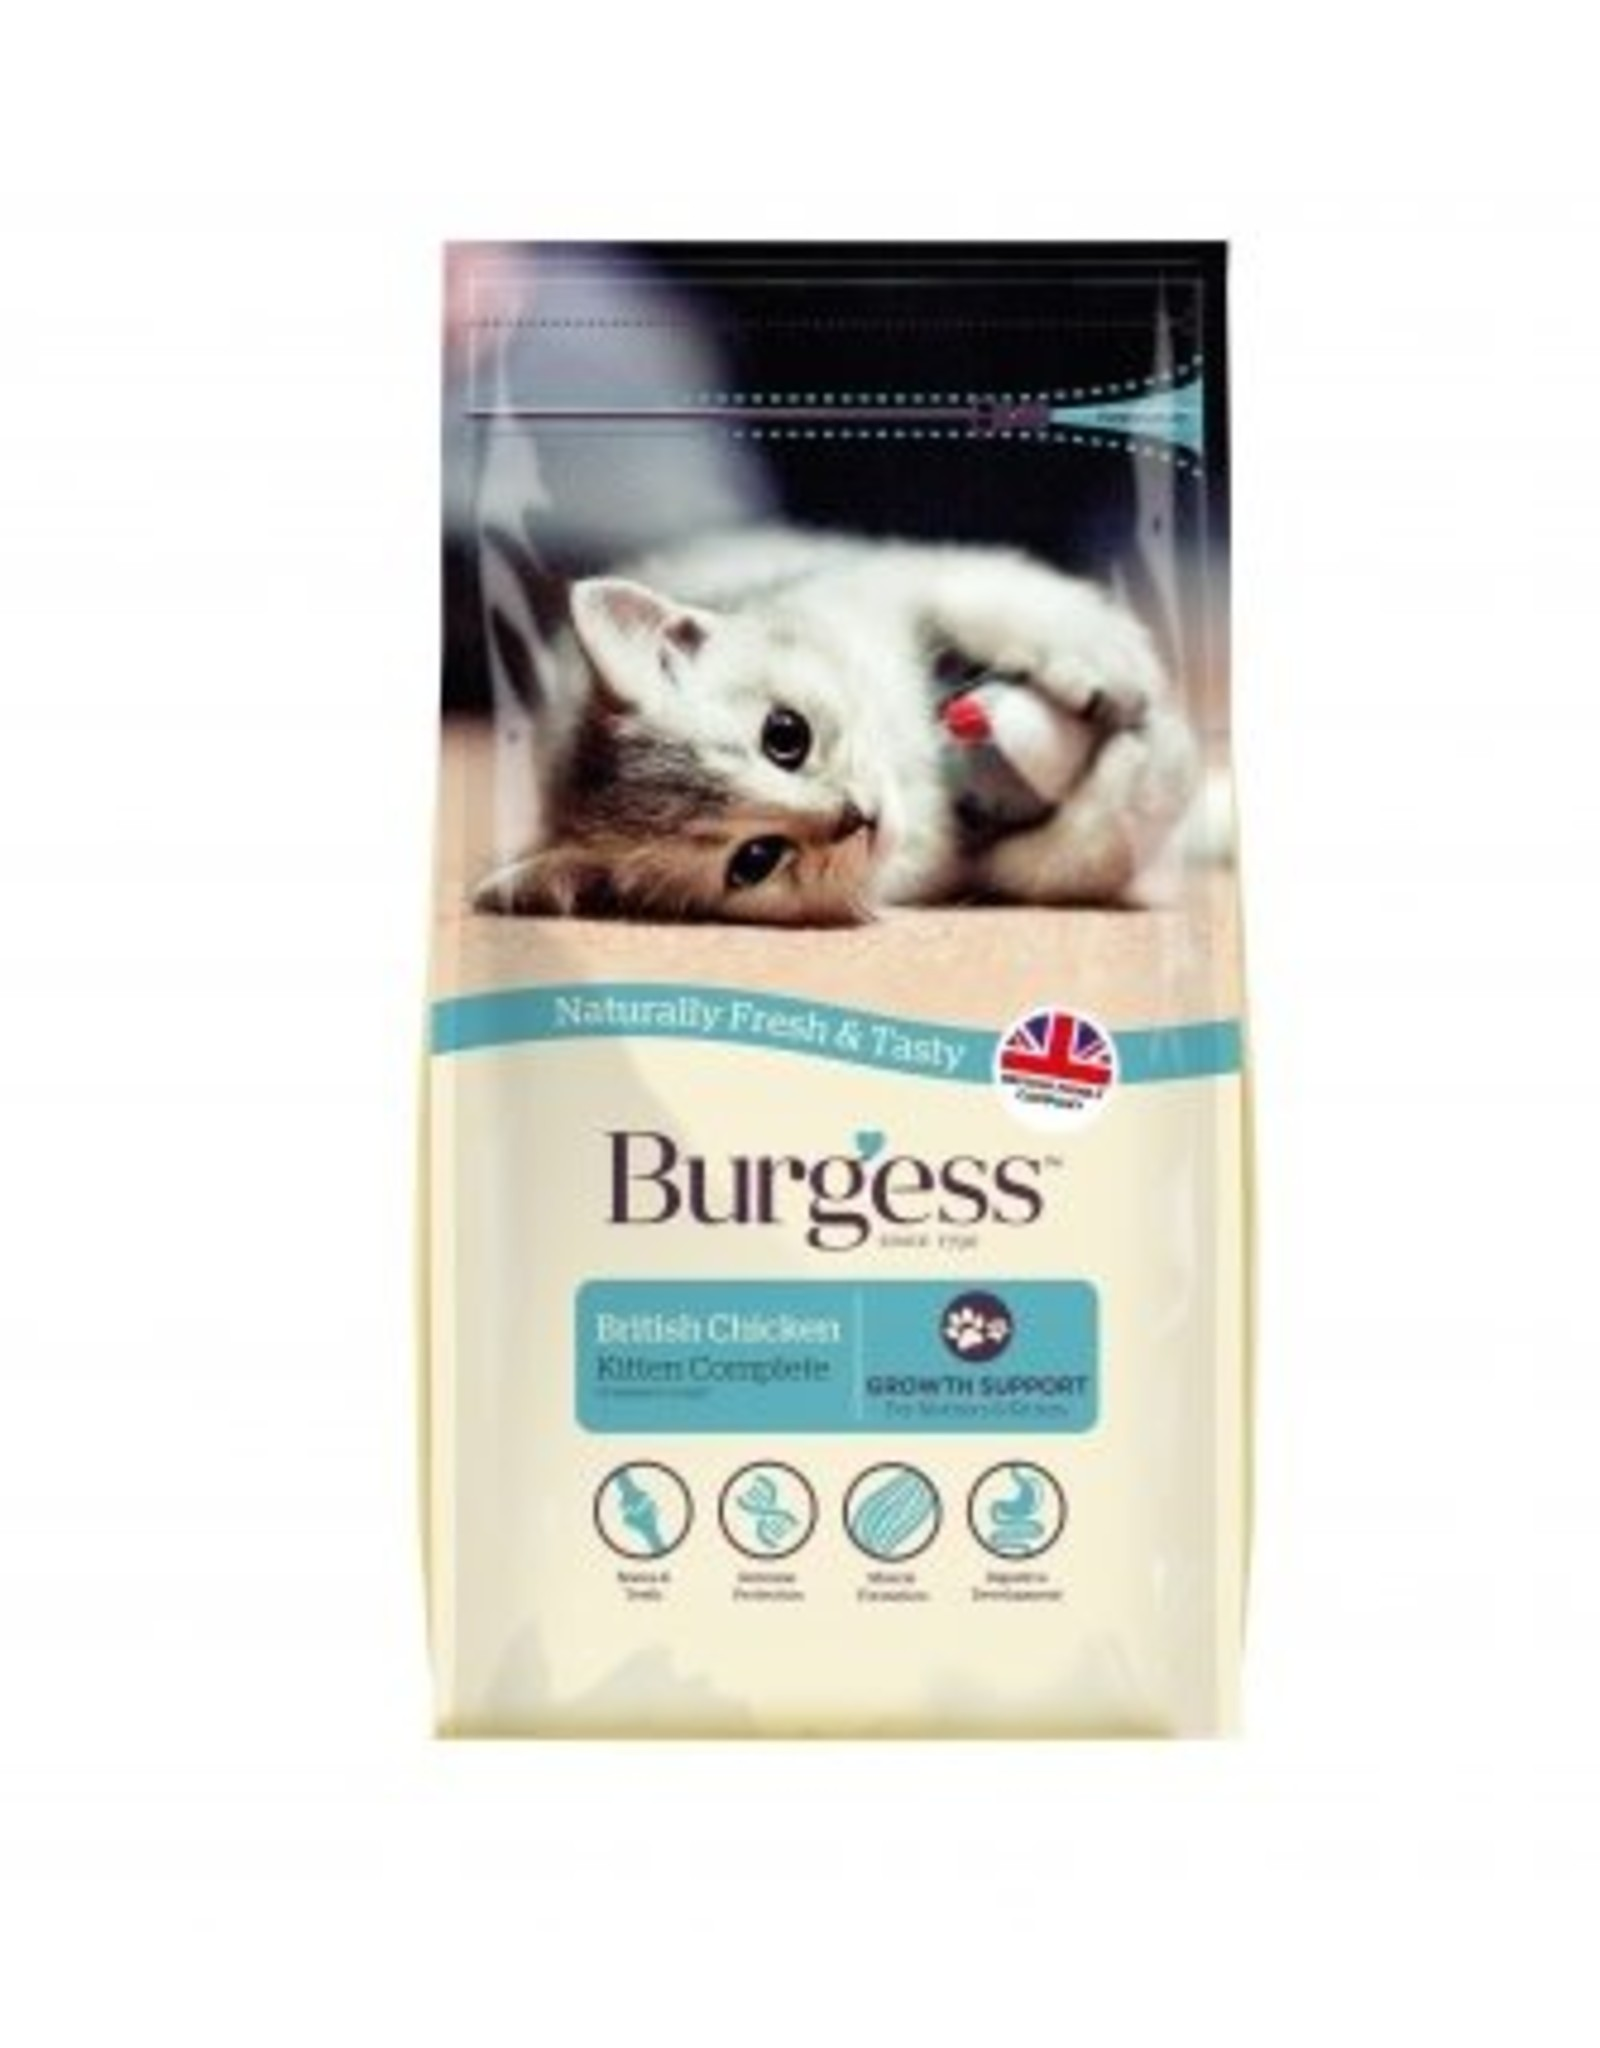 Burgess Kitten Cat Dry Food, Chicken, 1.5kg